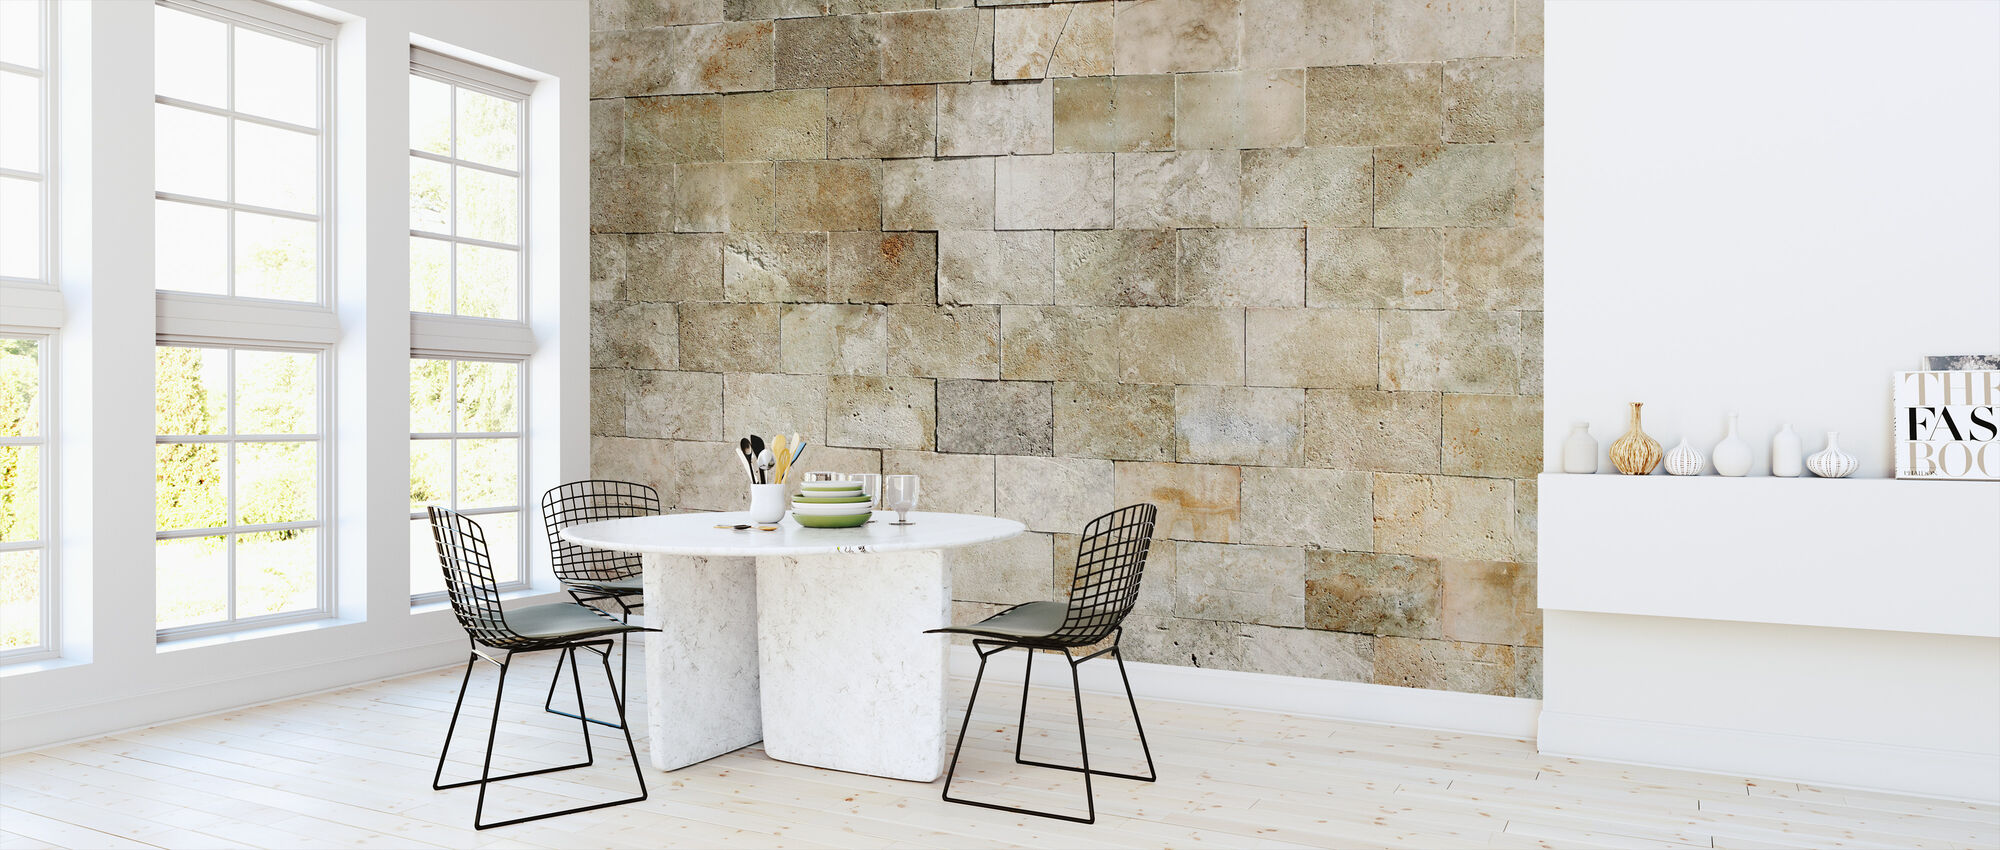 Tiled Stone Wall - Wallpaper - Kitchen